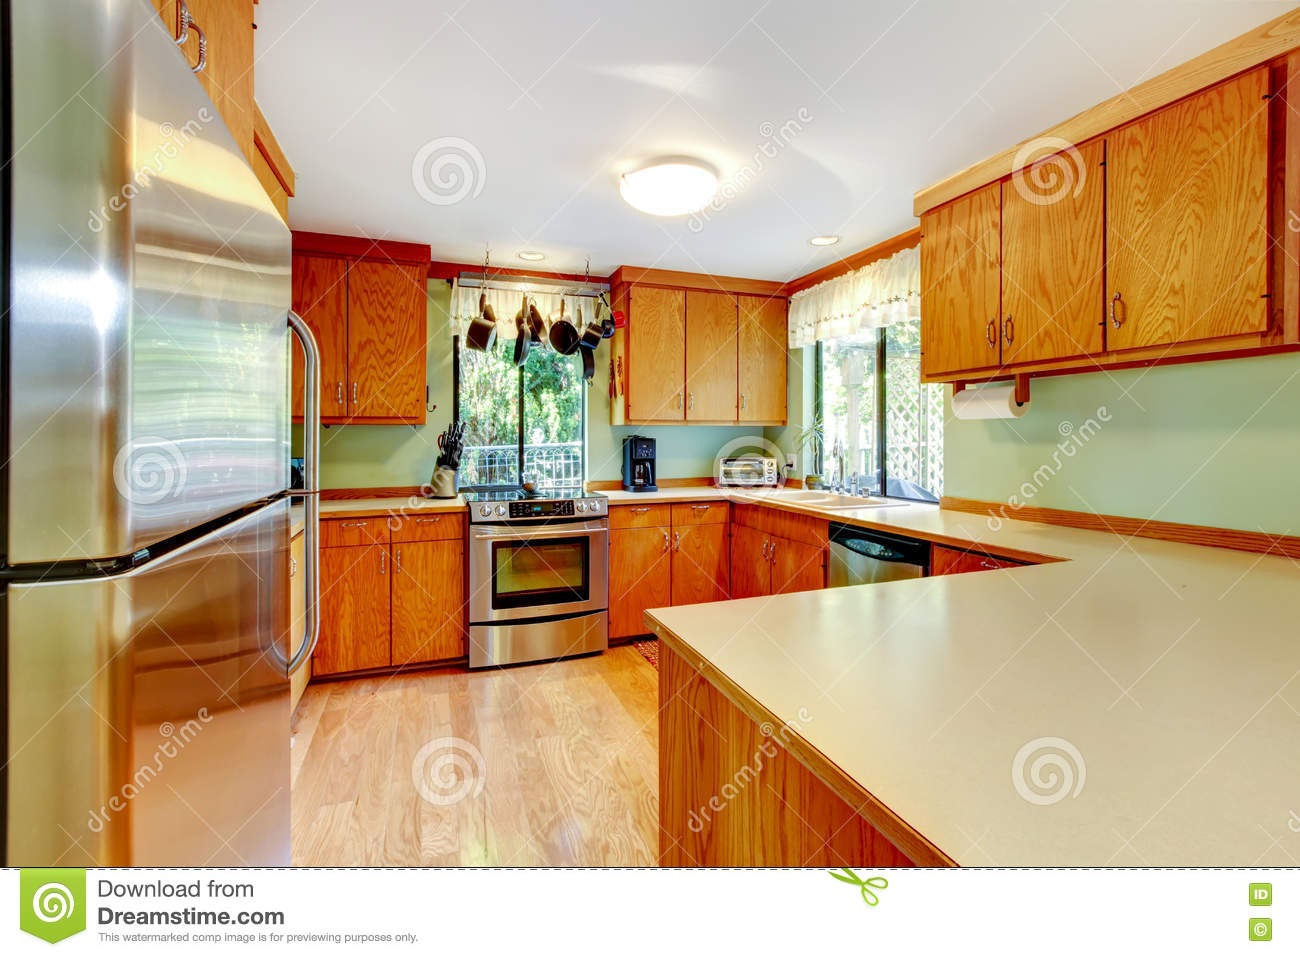 Bright Kitchen Cabinets Bright Kitchen With Light Brown Cabinets And Wooden